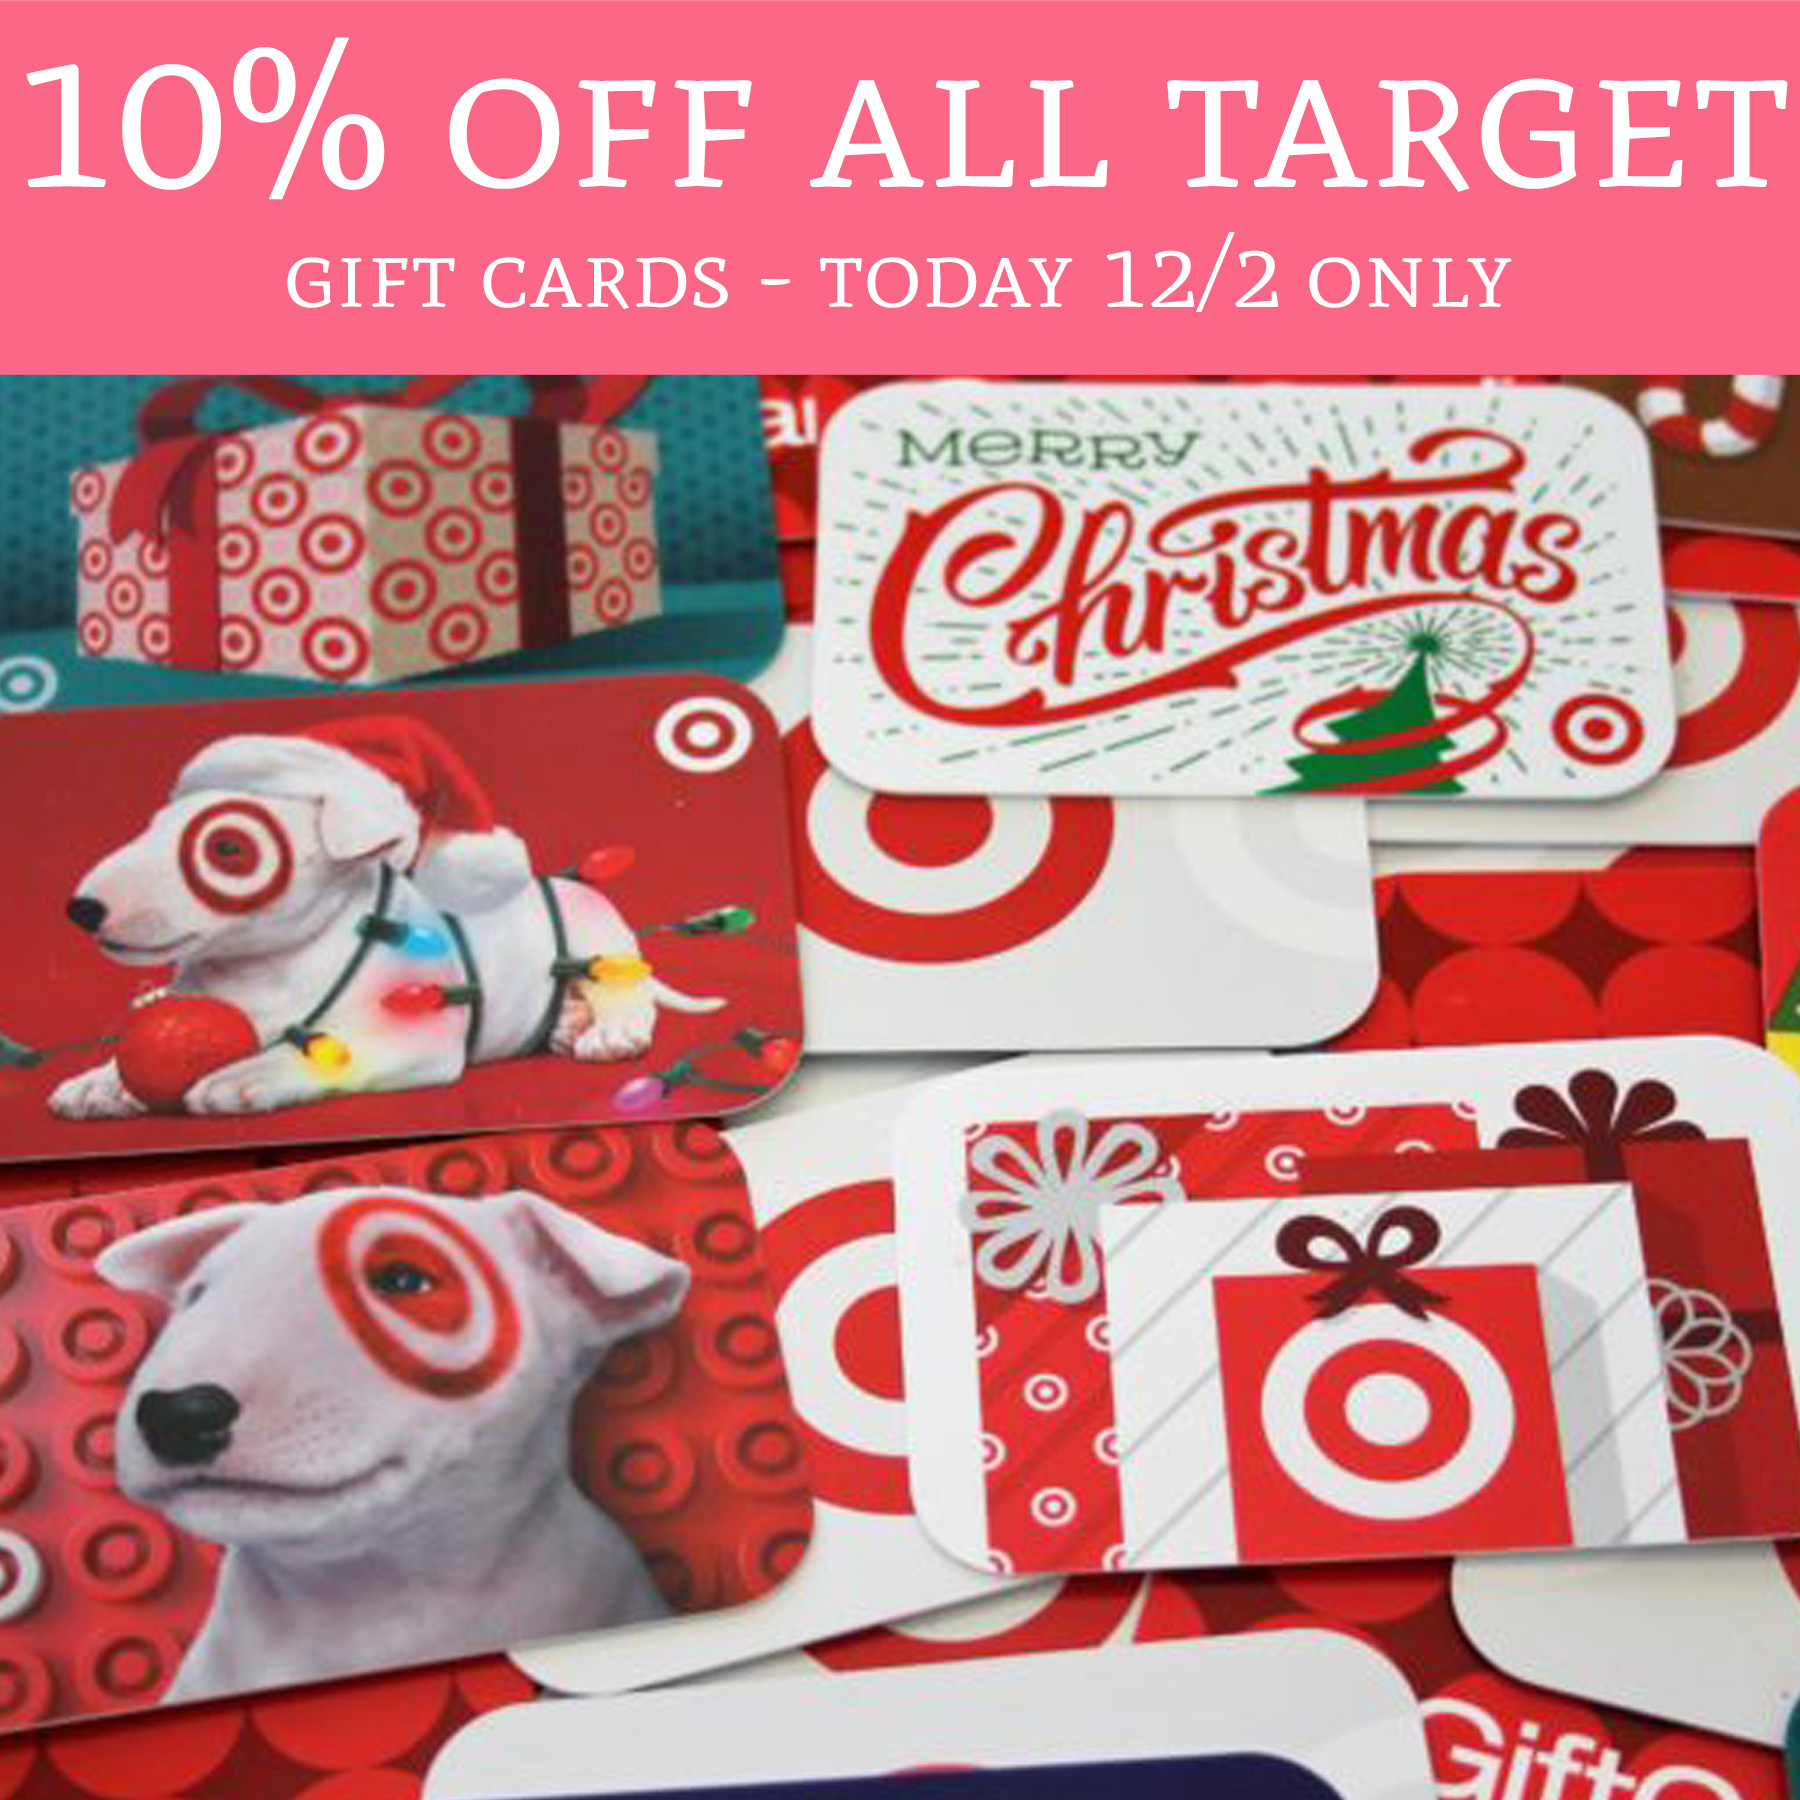 Today 12/2 Only! 10% Off ALL Target Gift Cards! - Deal Hunting Babe